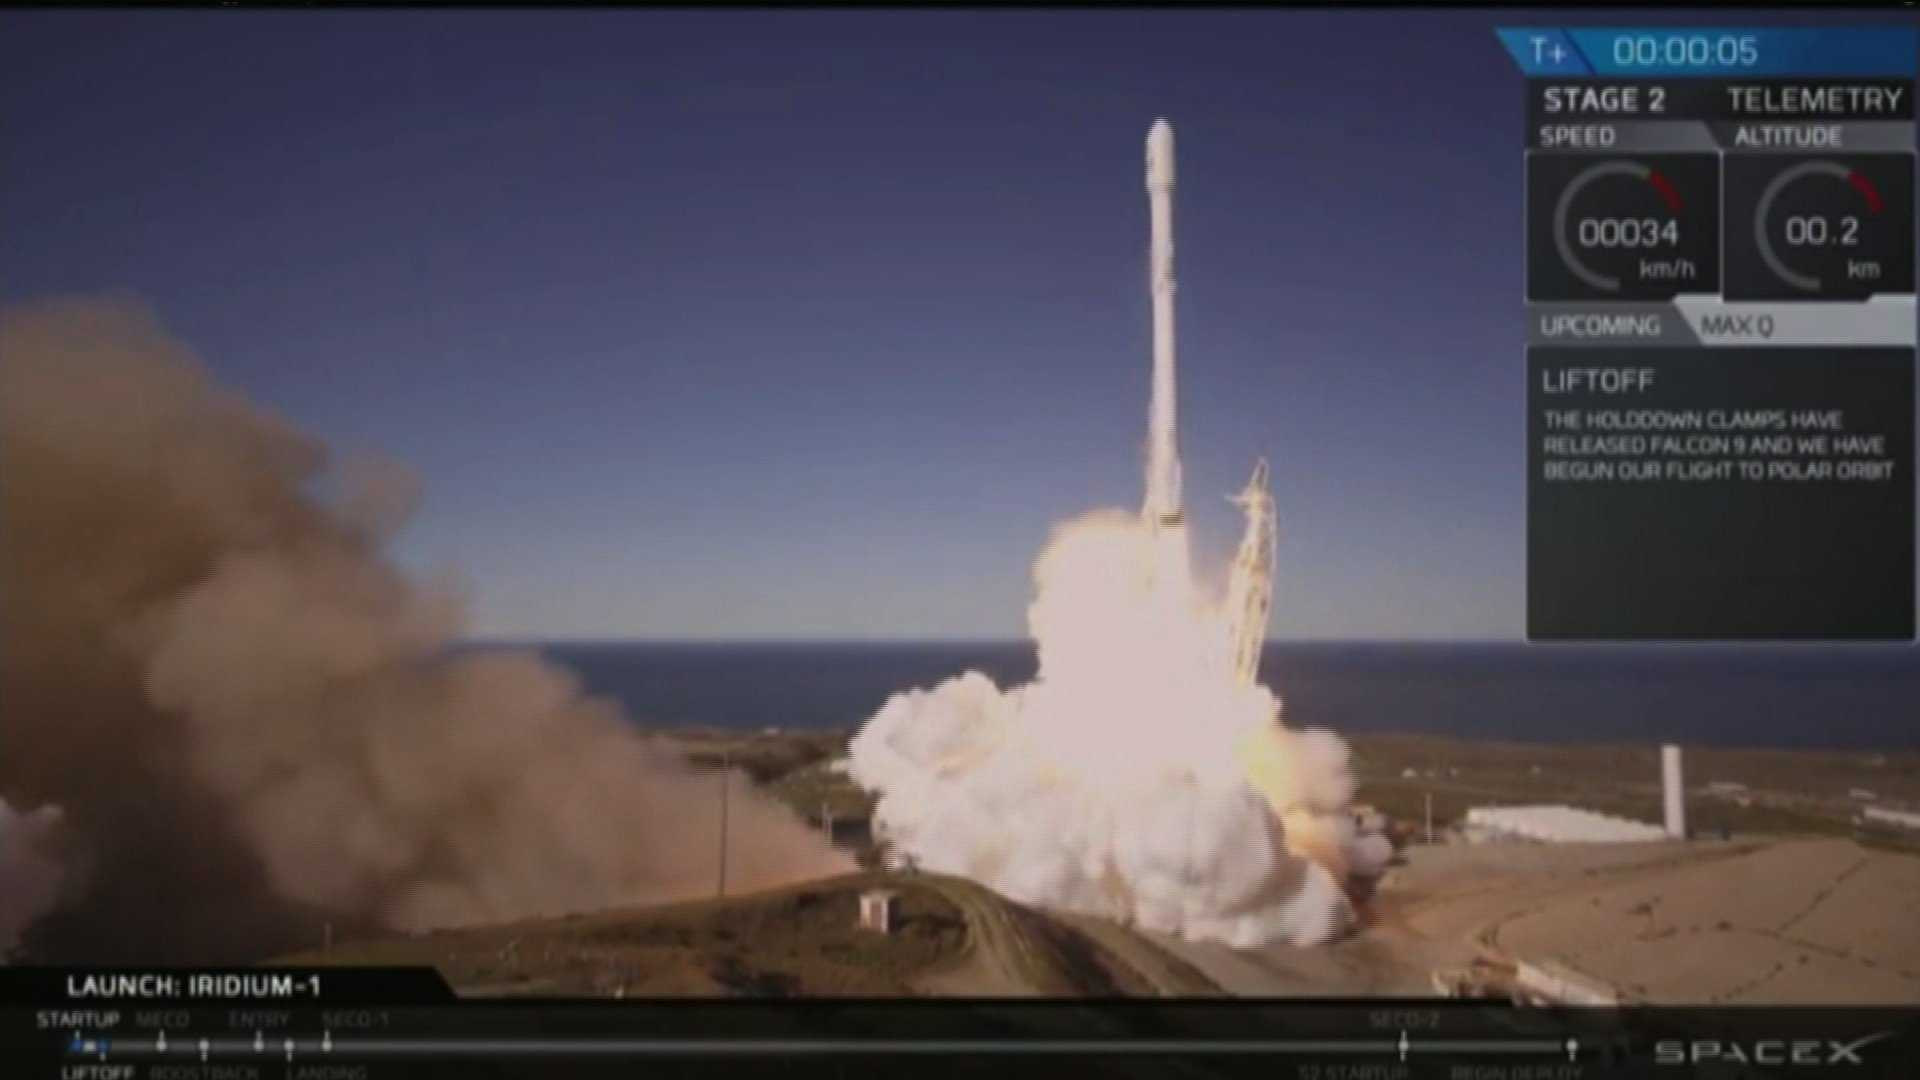 NRA spy satellite launched into orbit Monday by SpaceX